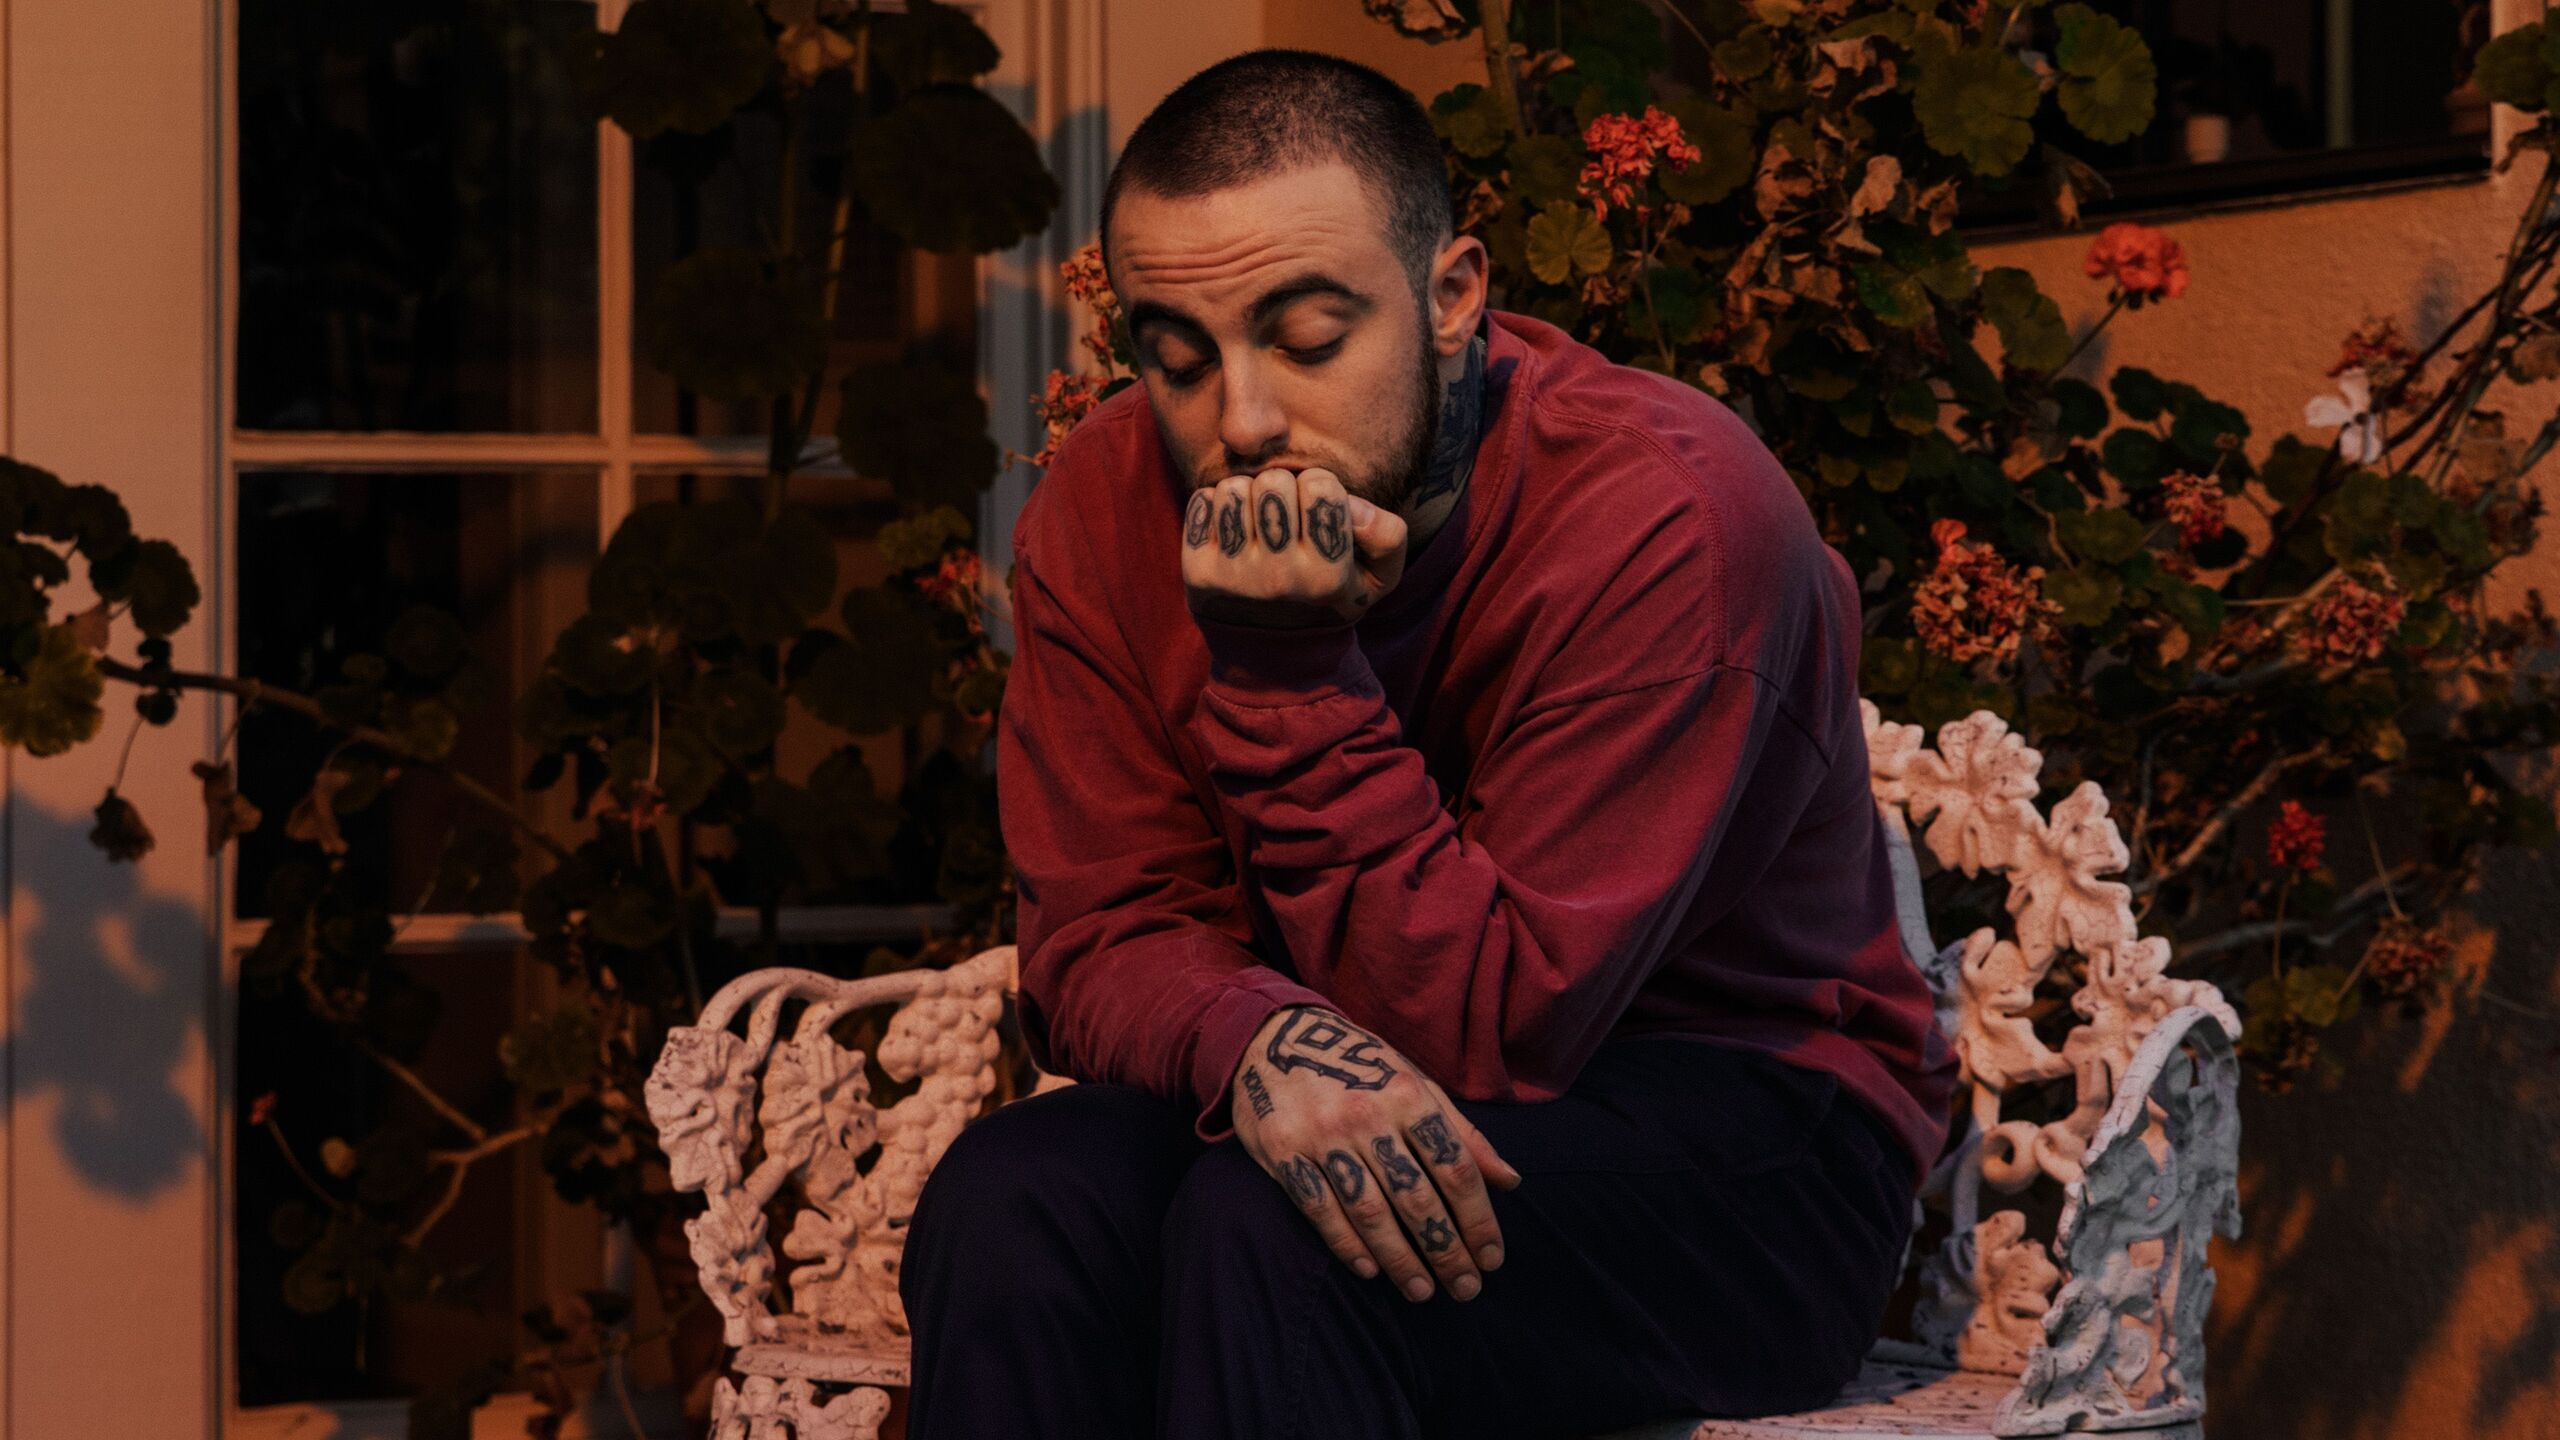 2560x1440 Mac Miller Rapper 1440p Resolution Hd 4k Wallpapers Images Backgrounds Photos And Pictures